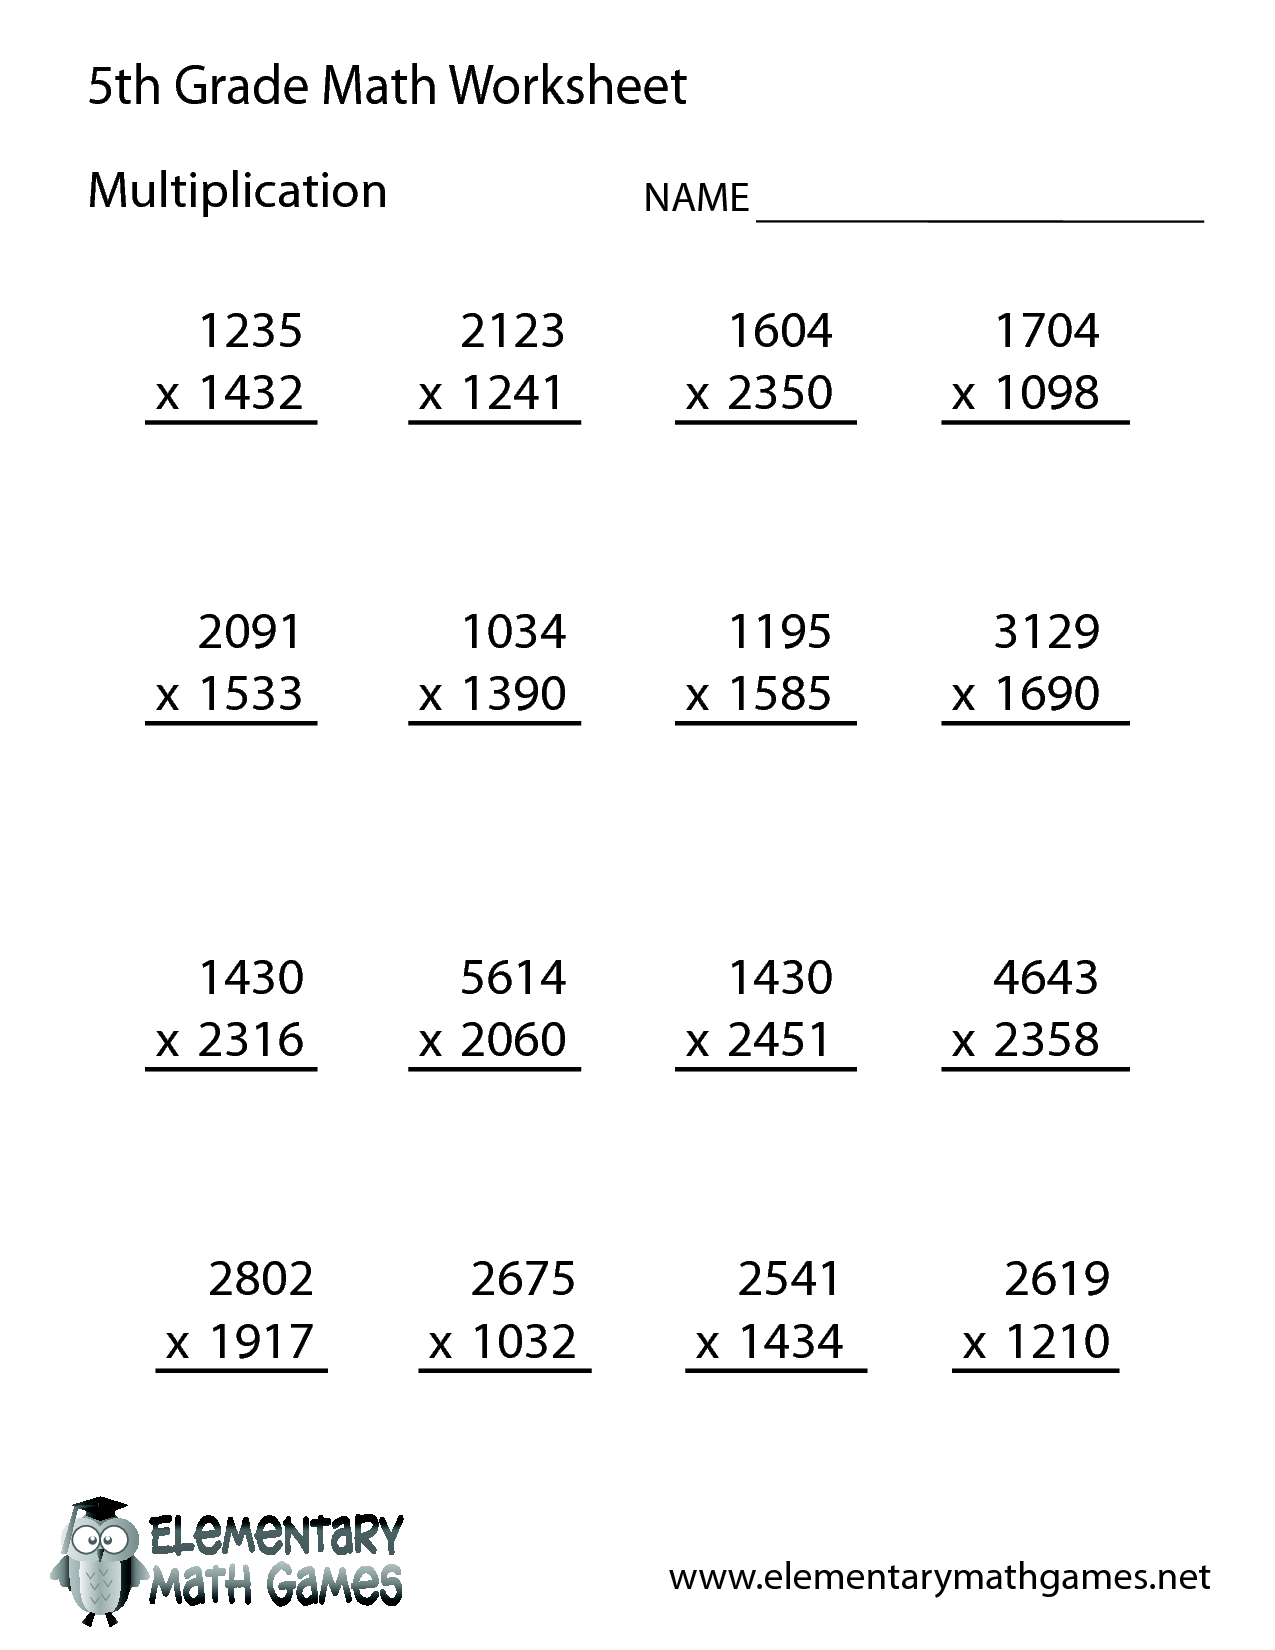 Free Math Worksheets for 5th Grade – 5th Grade Math Problems Worksheets